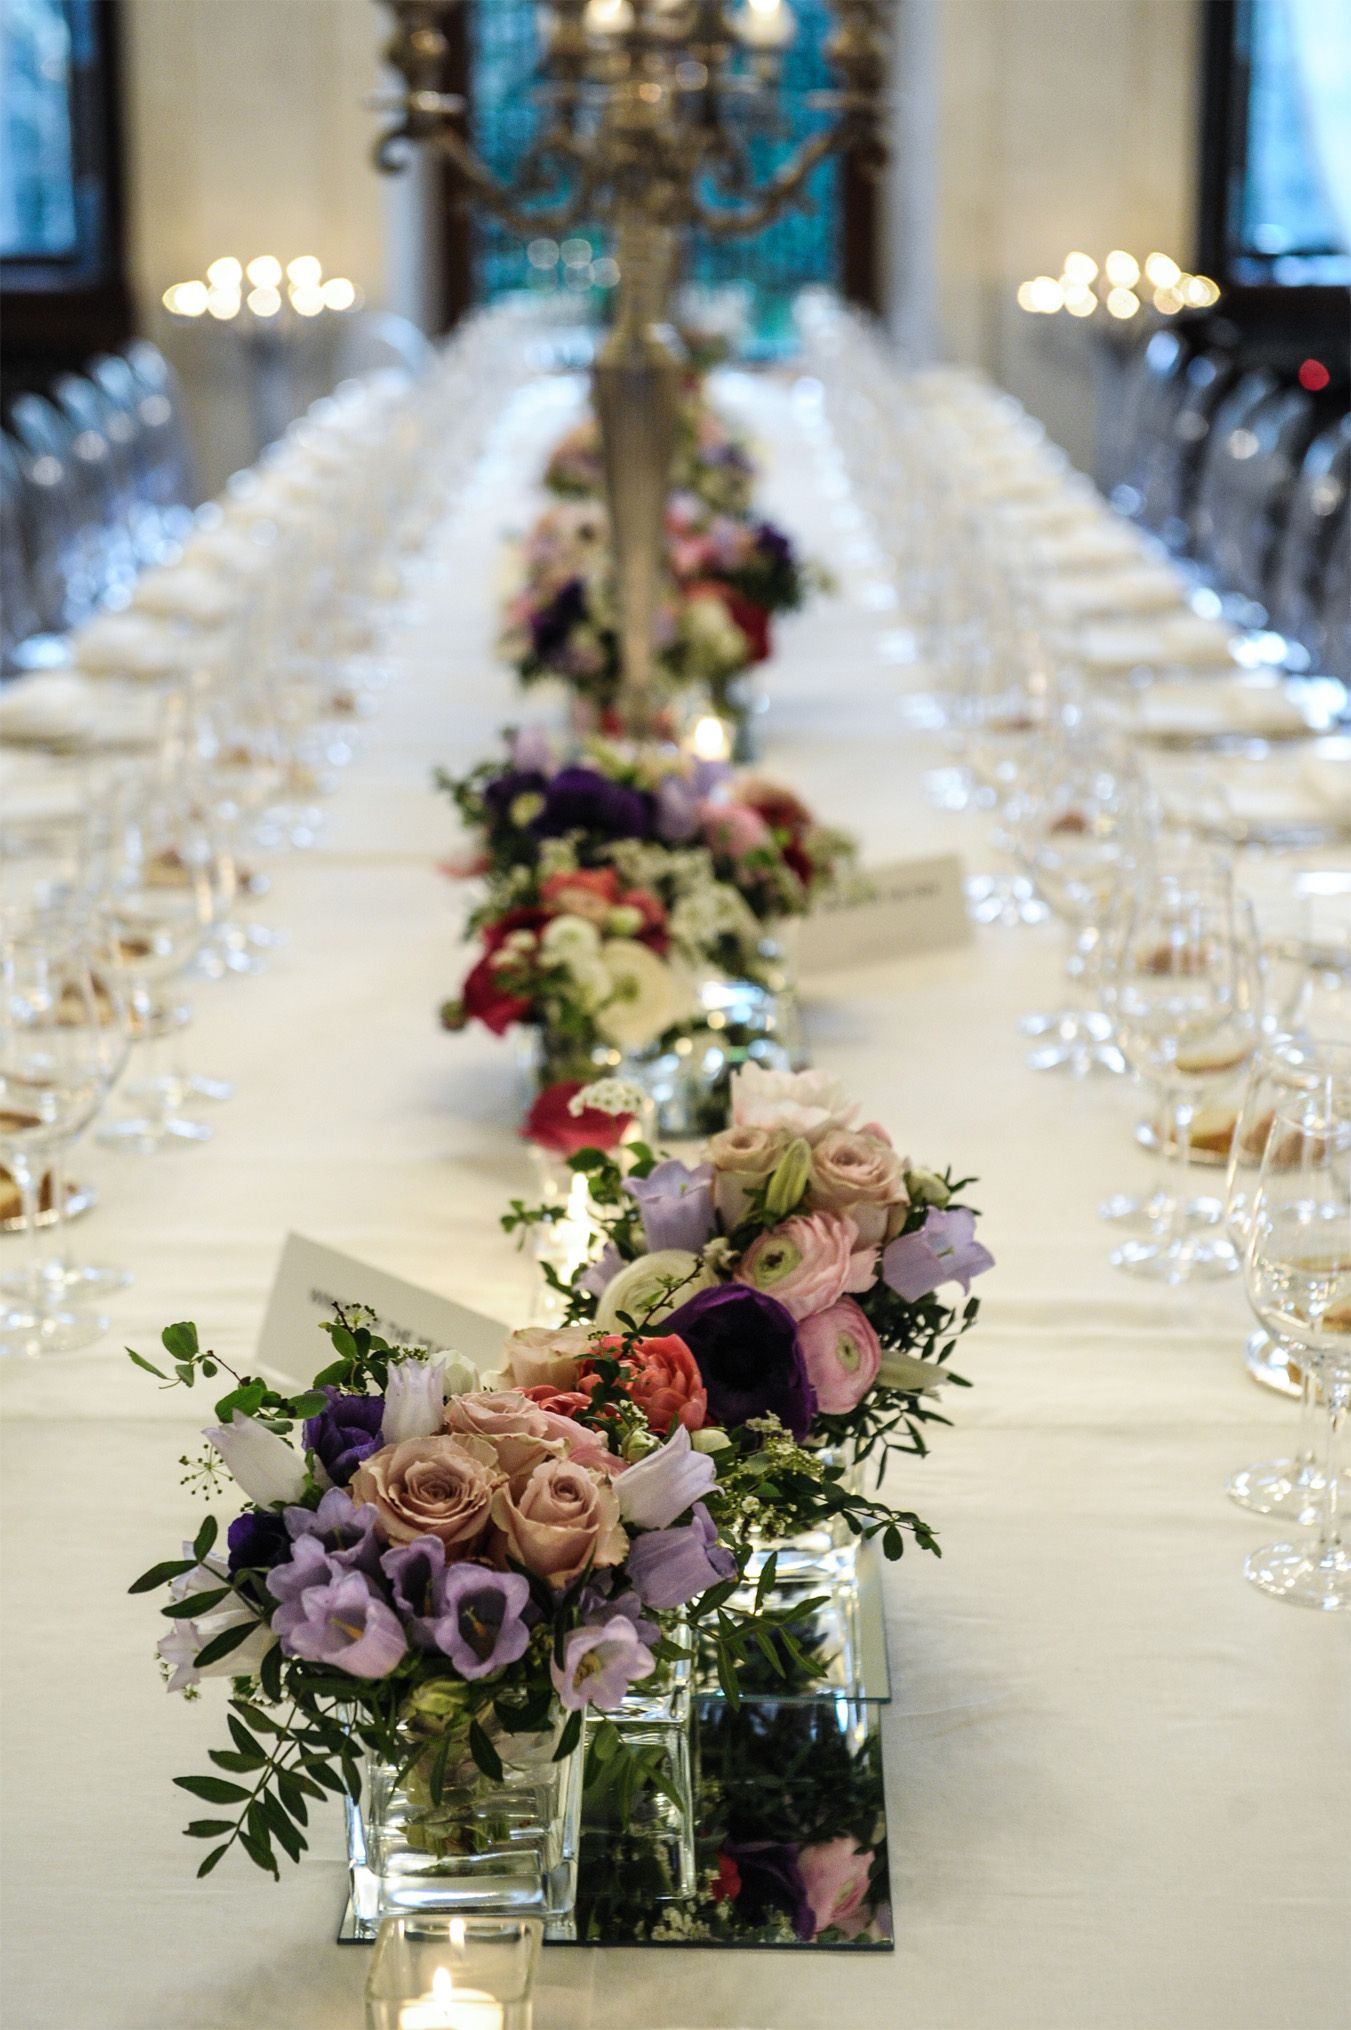 Wedding dinner table decoration table decoration with spinrg flowers tavolo imperiale con fiori